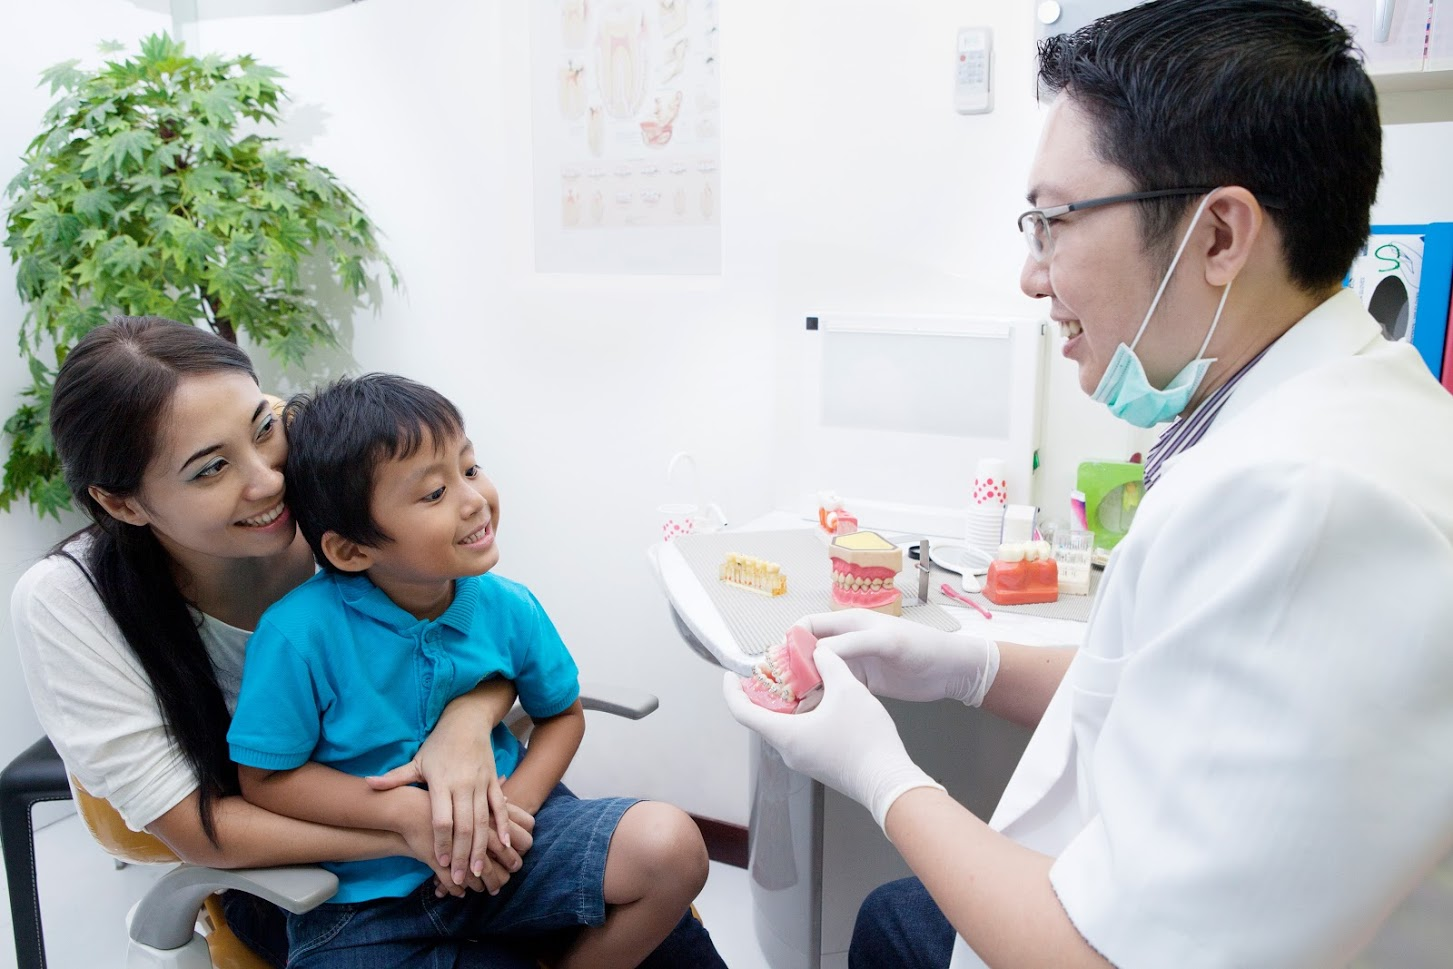 This is the image for the news article titled When Should You Start Bringing Your Child to the Dentist?